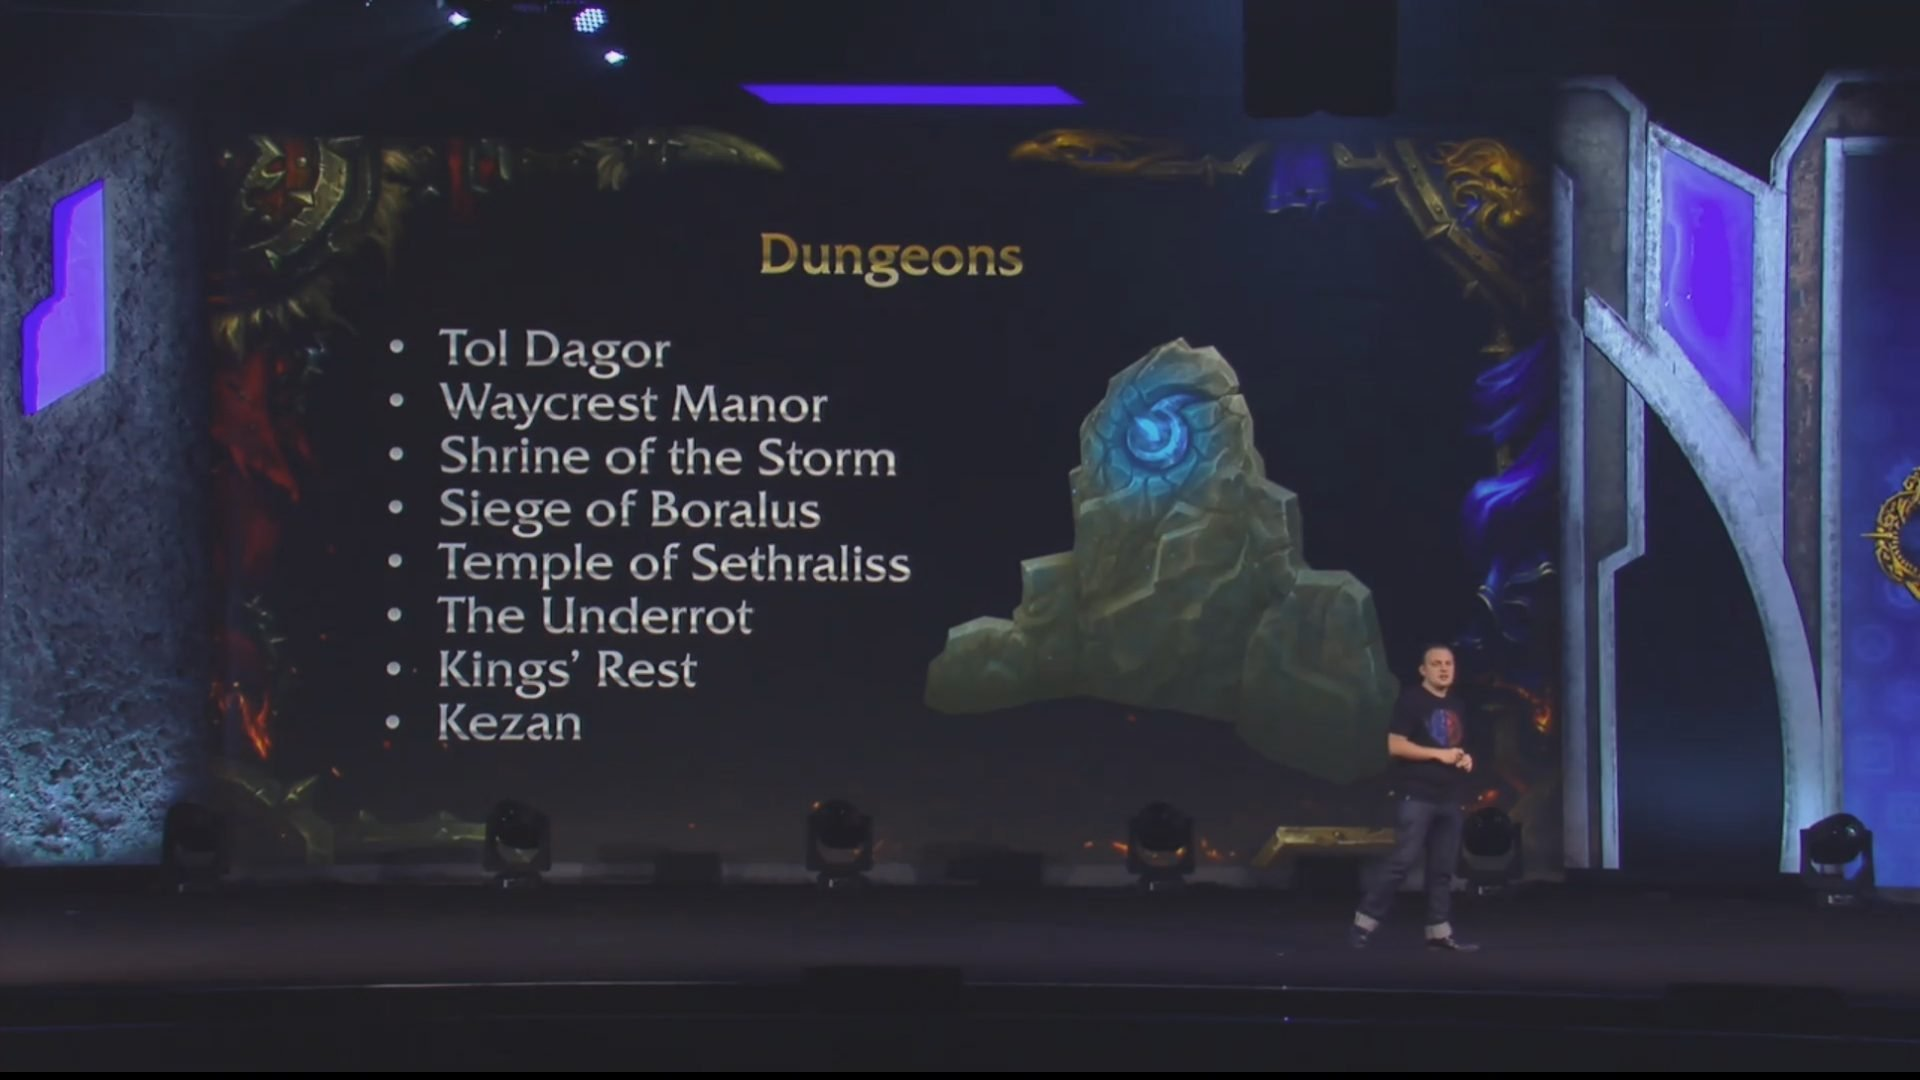 Blizzcon 2017 world of warcraft battle for azeroth panel blizzcon 2017 world of warcraft battle for azeroth panel transcript page 7 of 12 blizzplanet warcraft fandeluxe Gallery